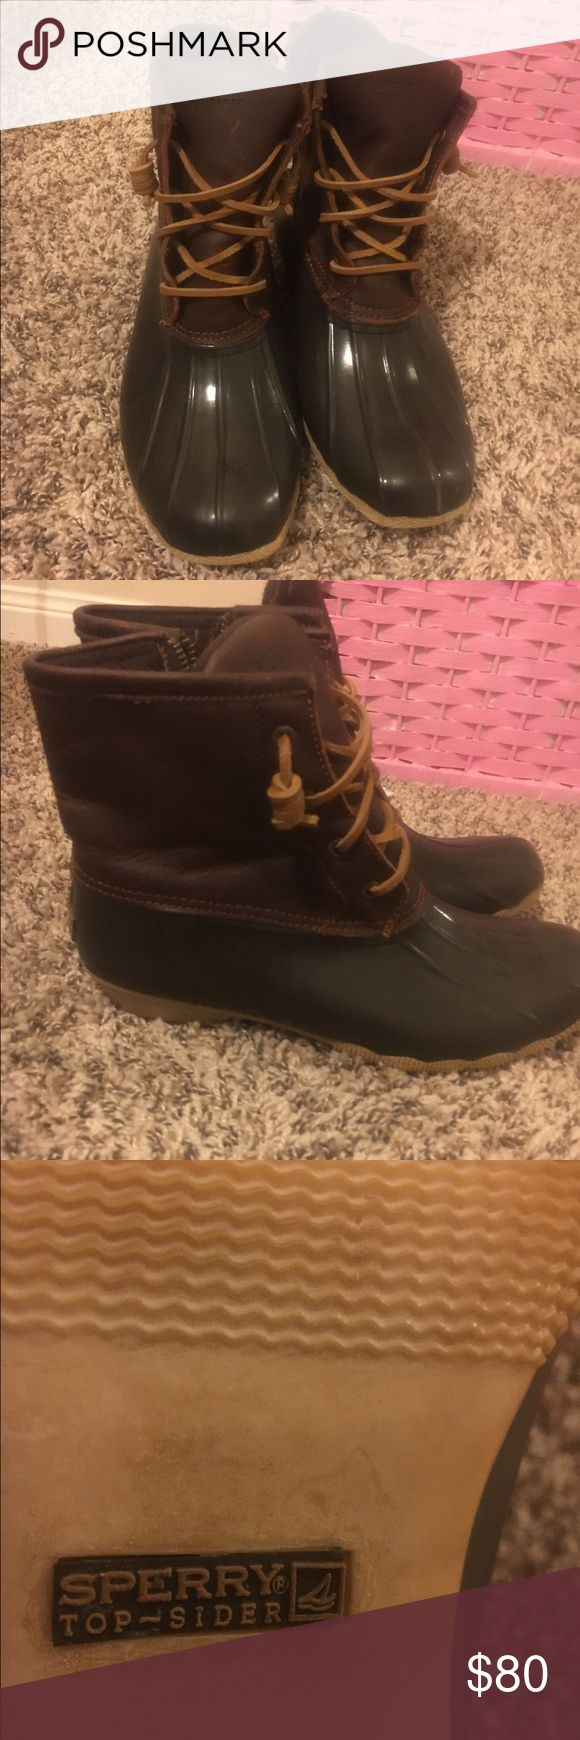 Sperry saltwater duck boots Perfect condition! Never wear them anymore. A little snug Sperry Top-Sider Shoes Winter & Rain Boots